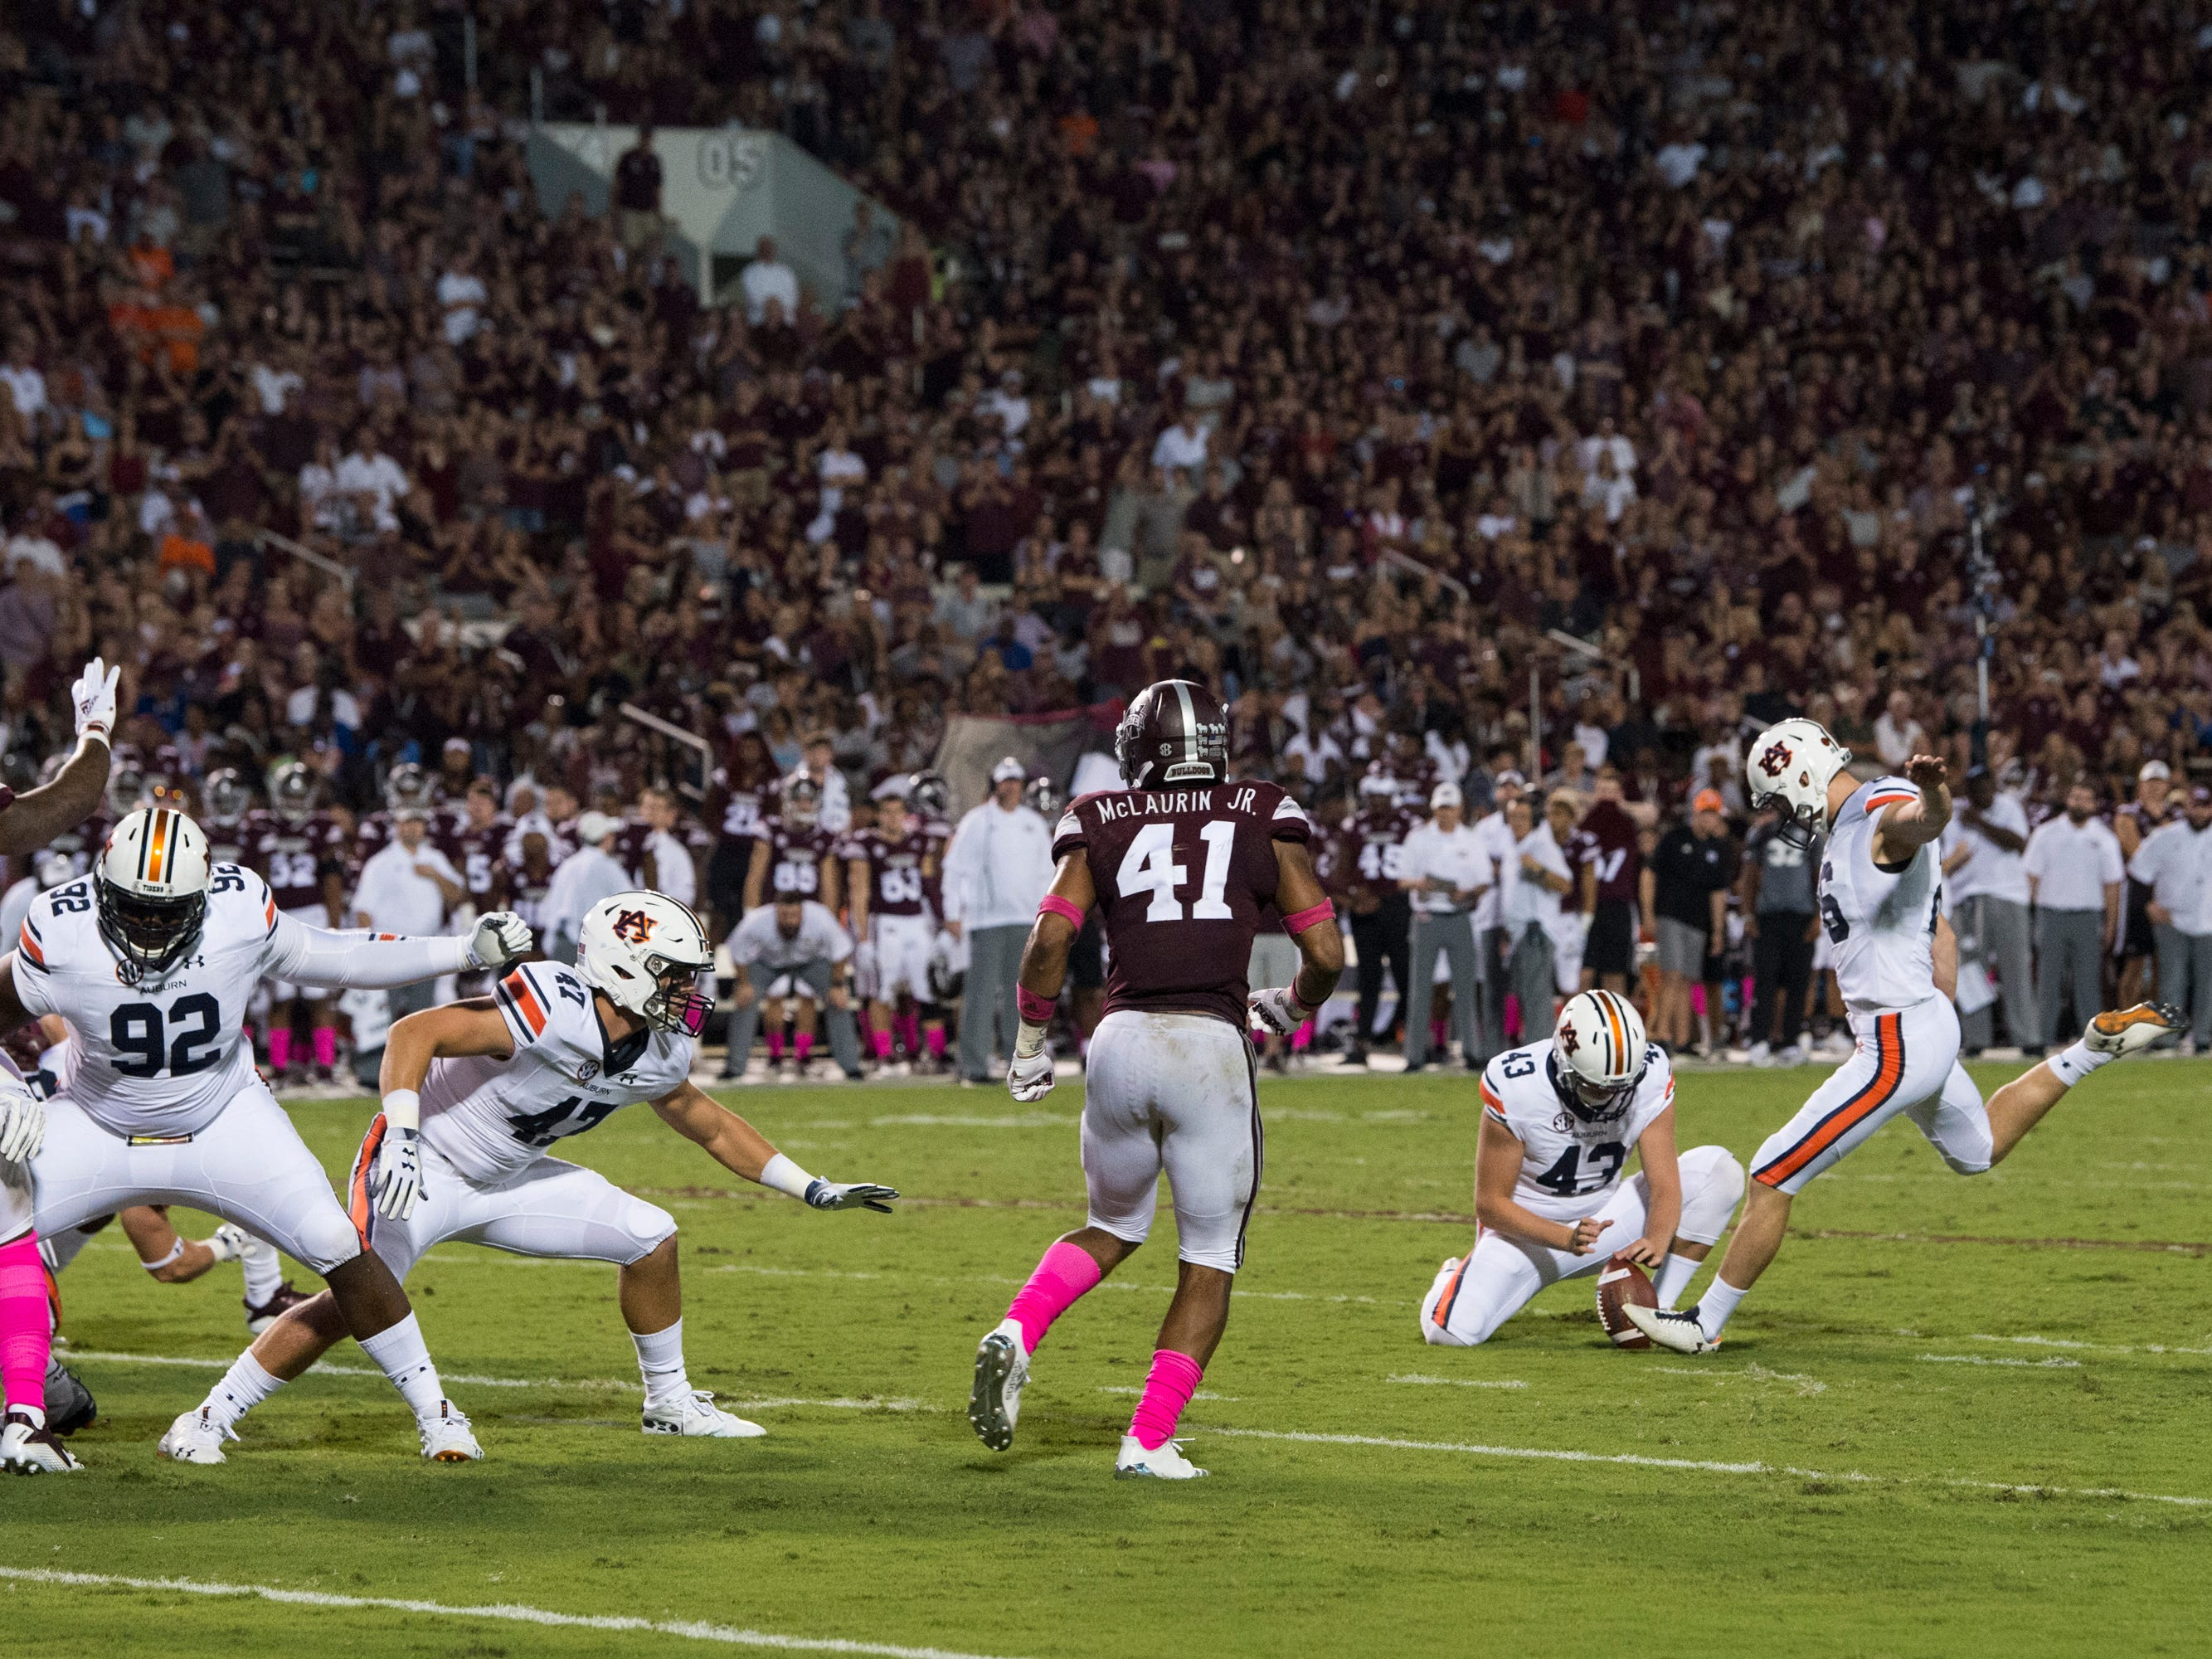 Auburn's Anders Carlson (26) kicks a field goal against Mississippi State at Davis Wade Stadium in Starkville, Miss., on Saturday, Oct. 6, 2018. Mississippi State defeated Auburn 23-9.